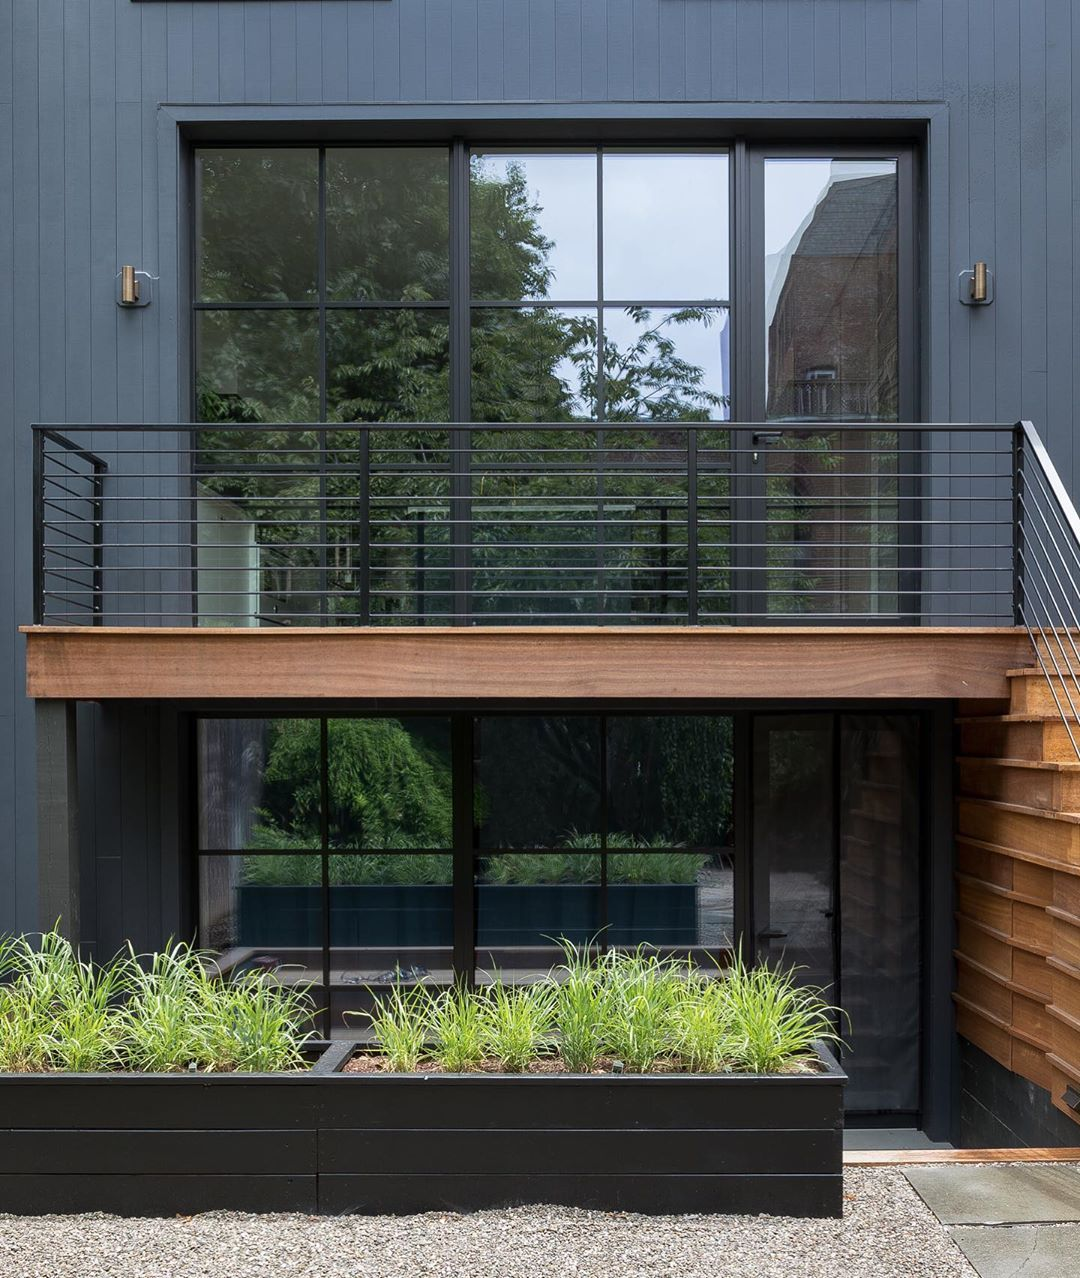 Backyard Facades We Do A Lot Of Them Here In Jerseycity And Hoboken We Try To Keep Them Simple Well Scaled And Minimalist Garden Garden Design Backyard